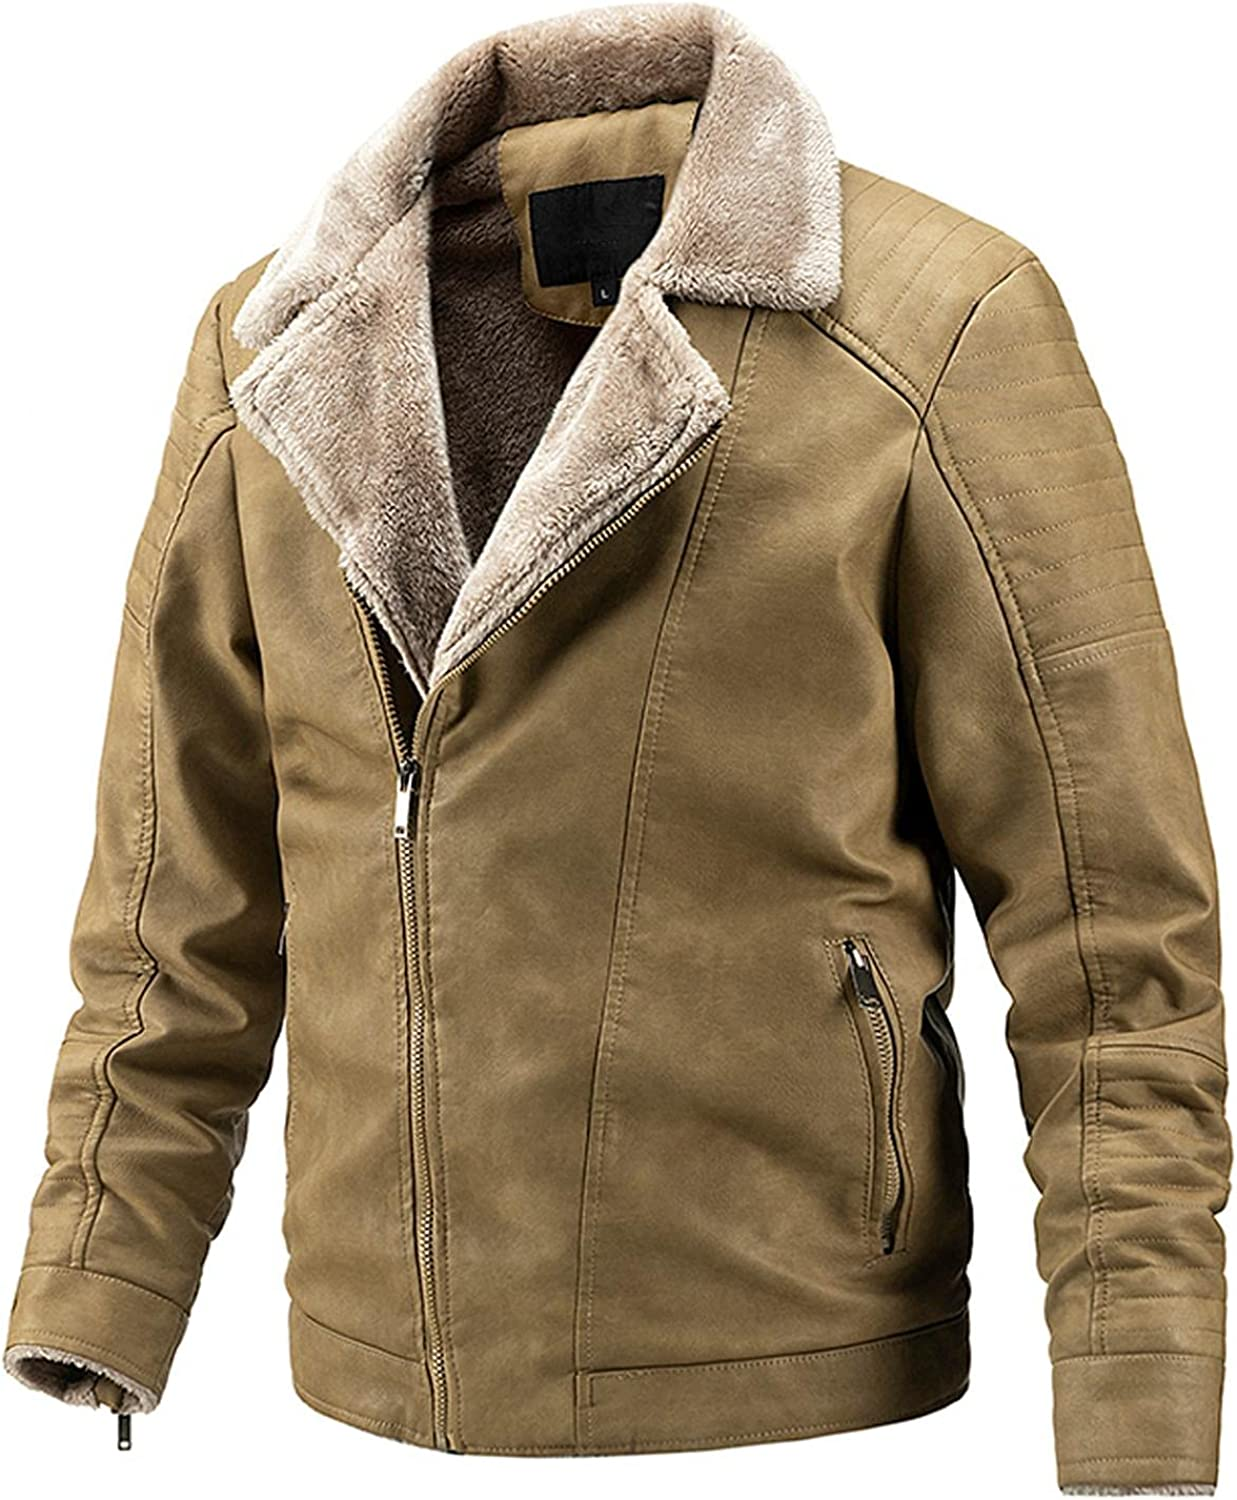 JSPOYOU Mens Fur Collar Coats Winter Warm PU Faux Leather Zip Up Jacket Big and Tall Fleece Lined Overcoat